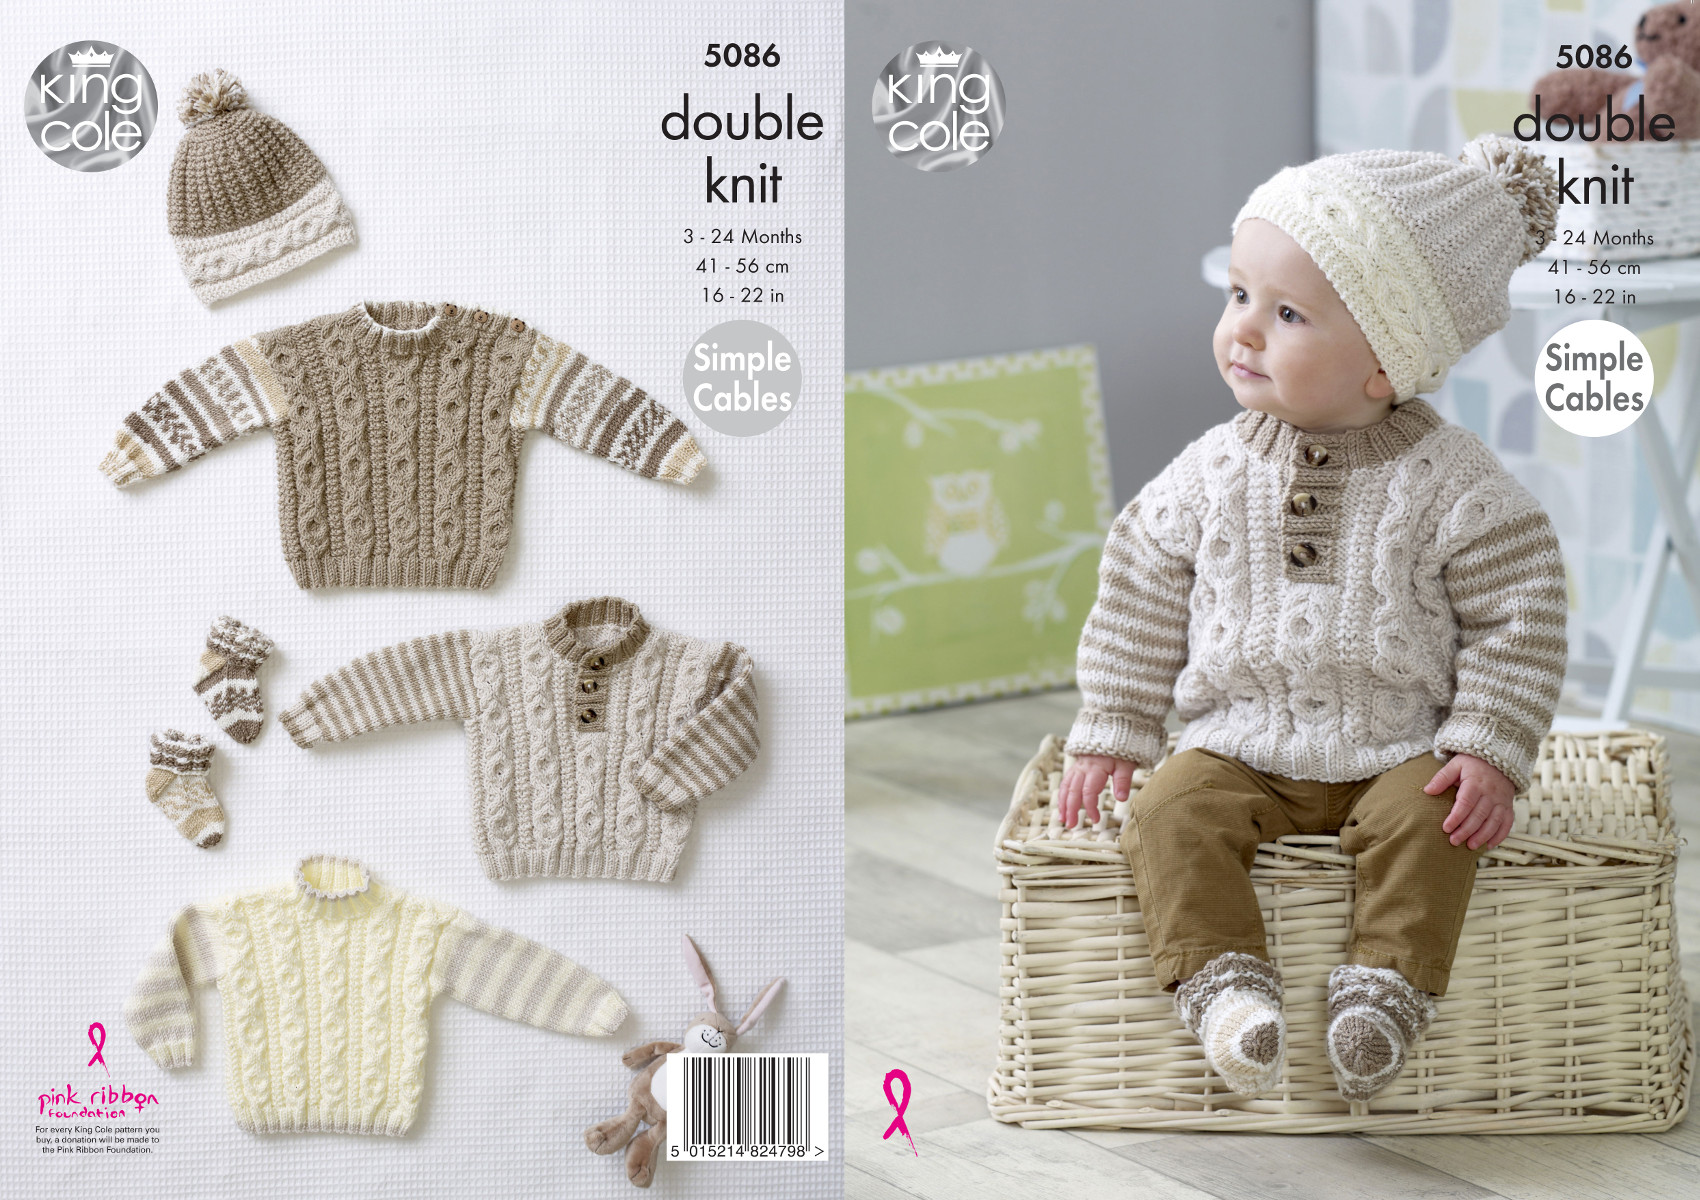 King cole baby double knitting pattern simple cable sweaters hats please look at images below for the chart showing measurements yarn and materials requirement to make this garment bankloansurffo Choice Image